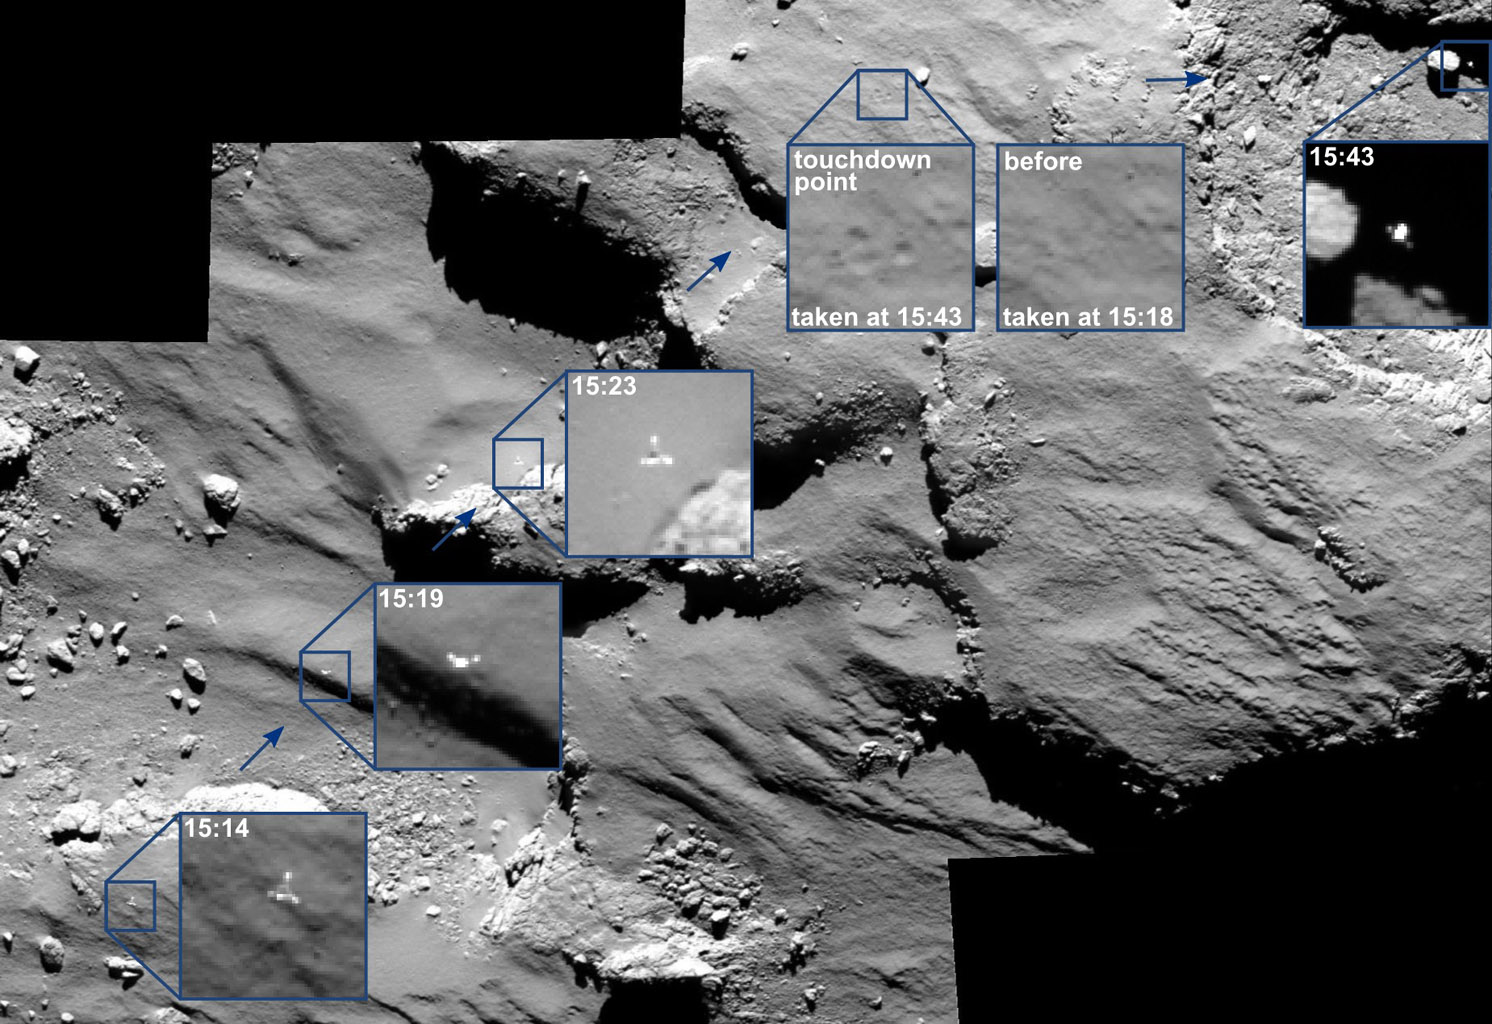 philae comet lander nasa - photo #29